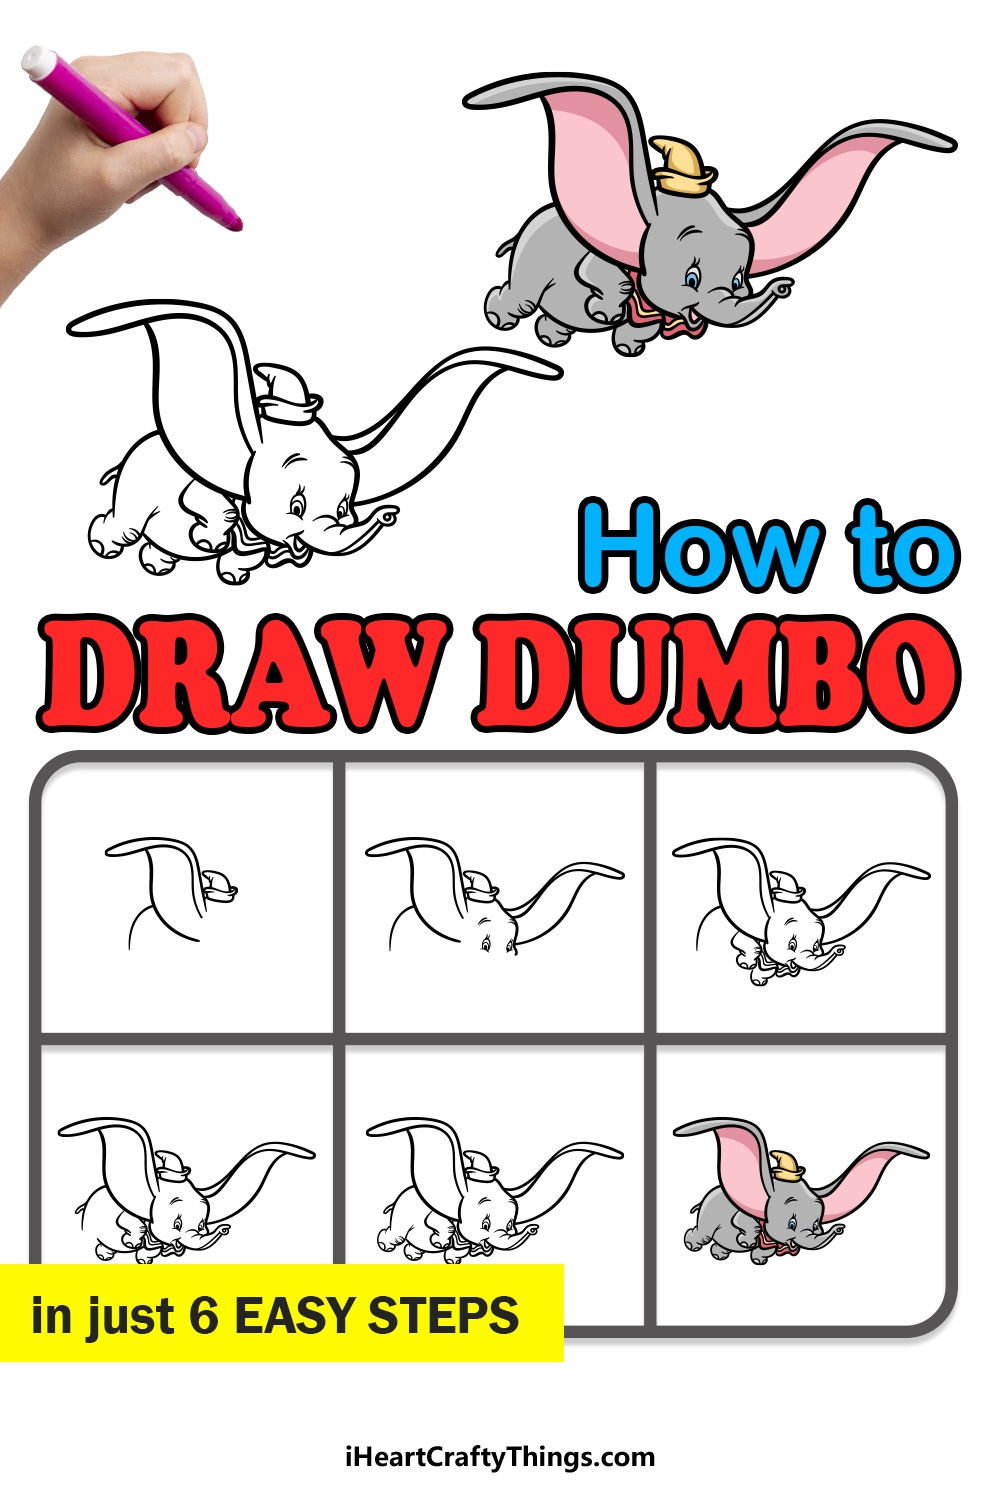 how to draw Dumbo in 6 easy steps